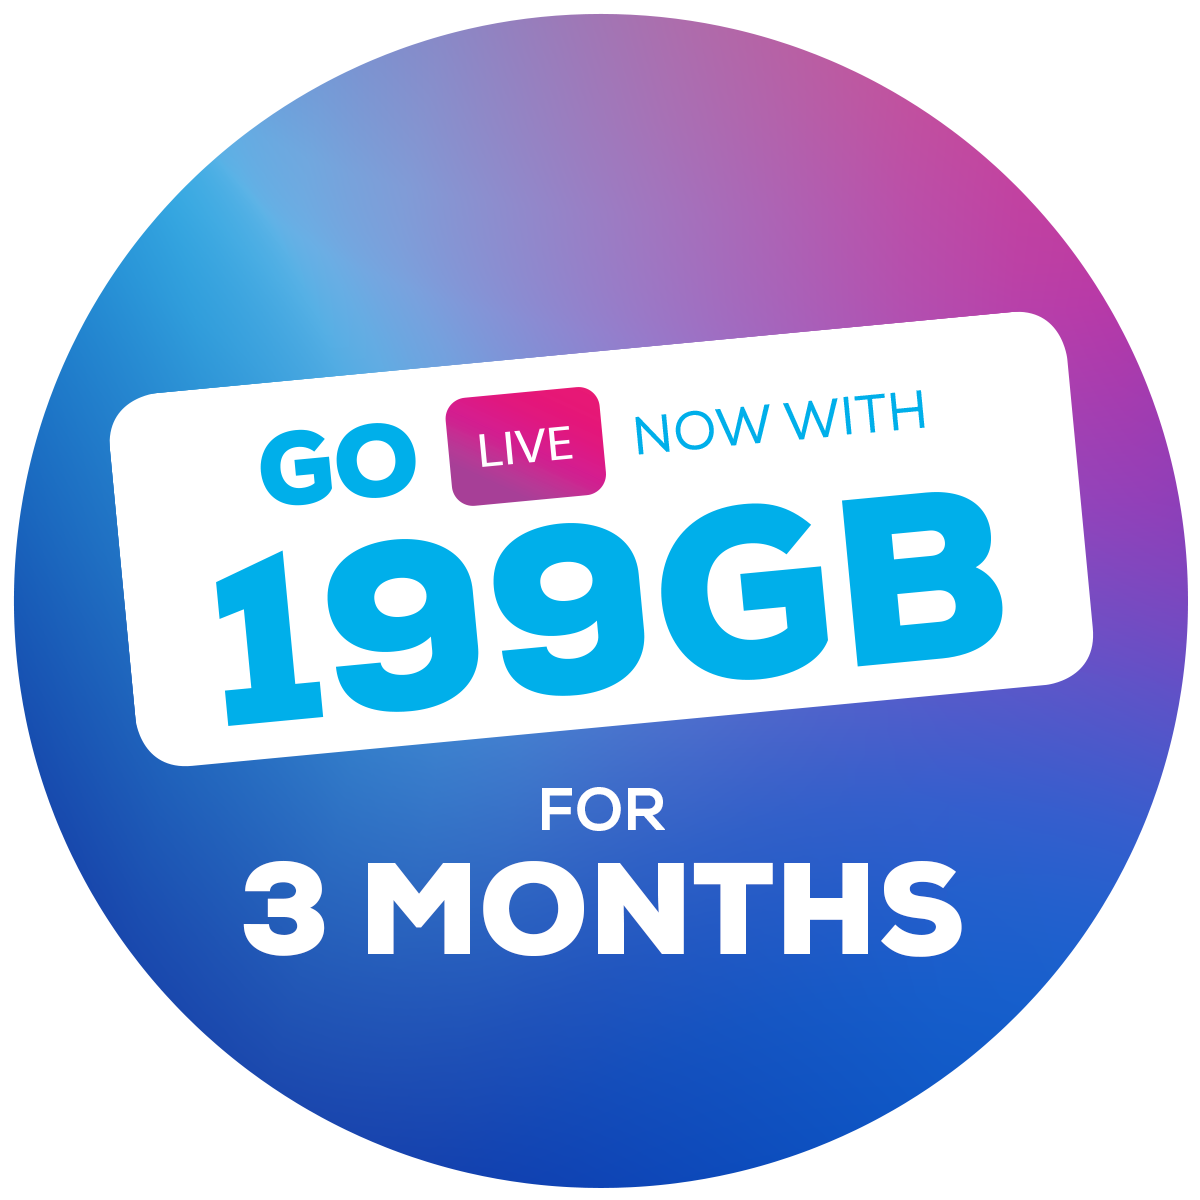 199GB for 3 months